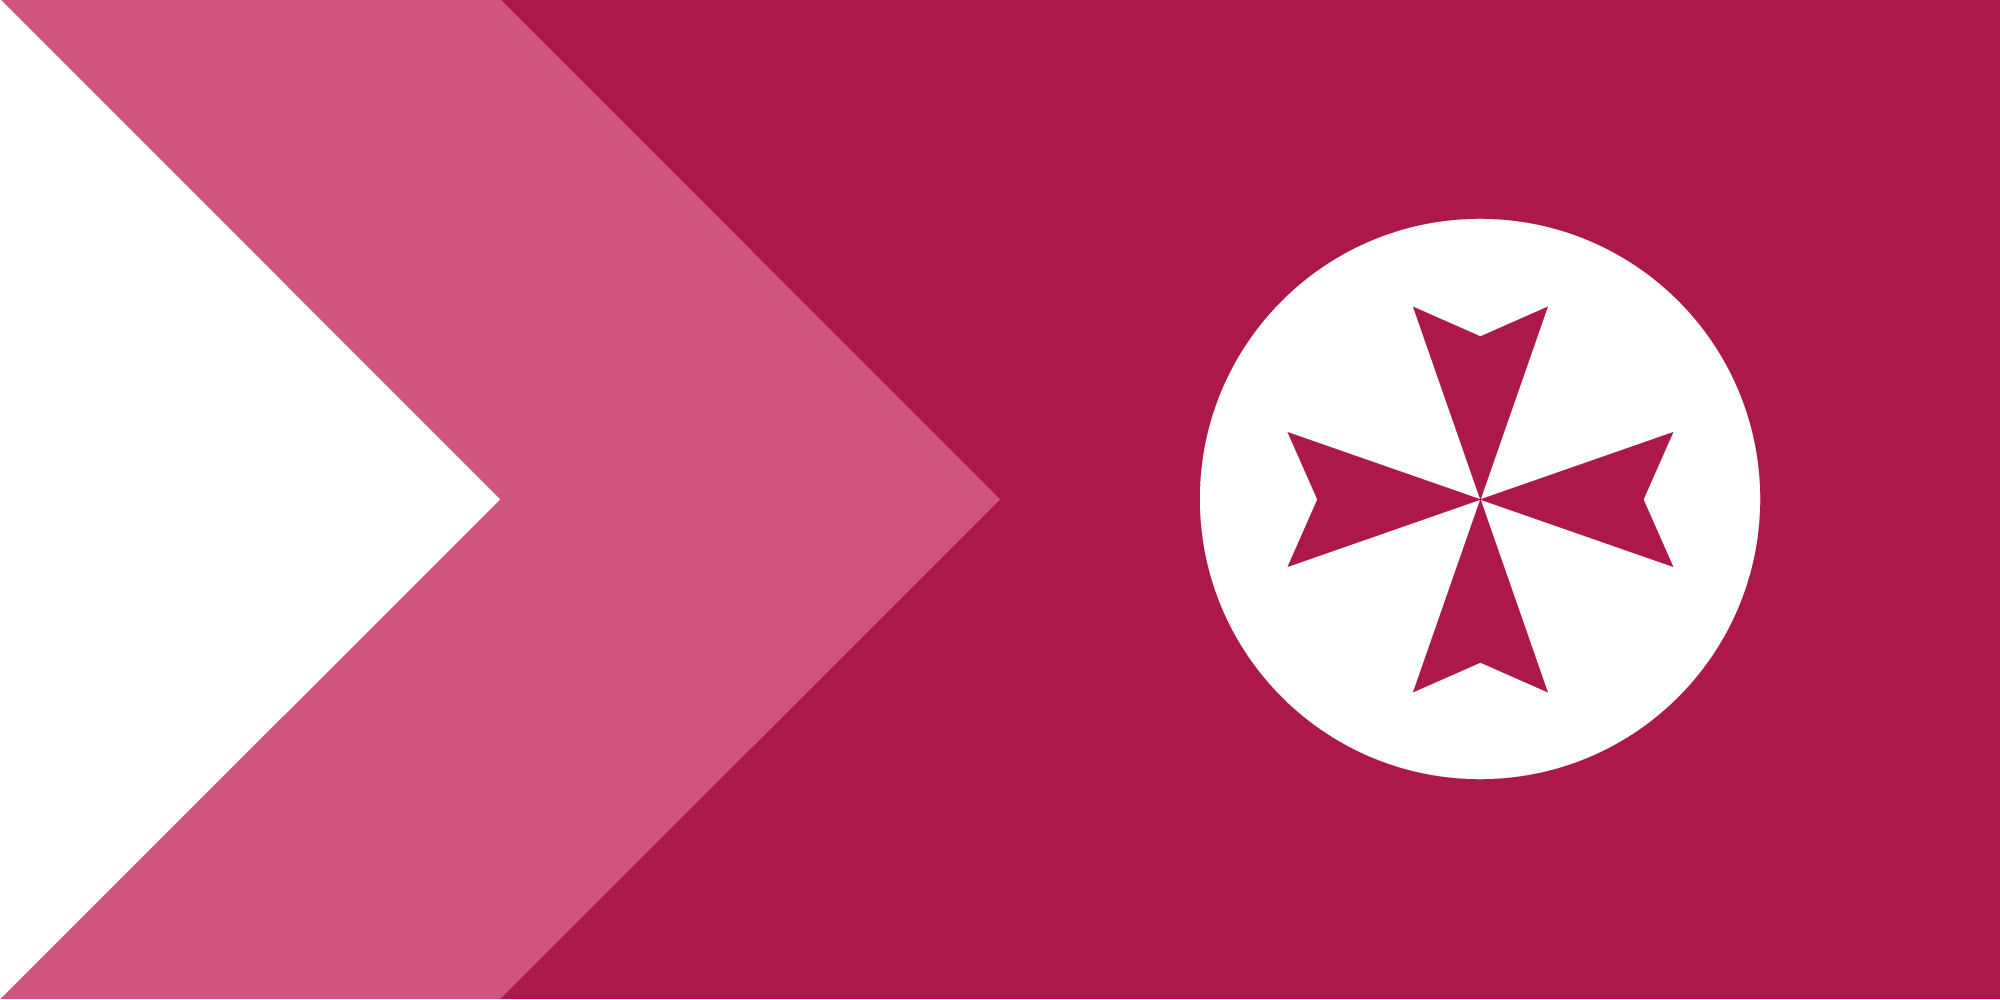 A state flag proposal for QLD